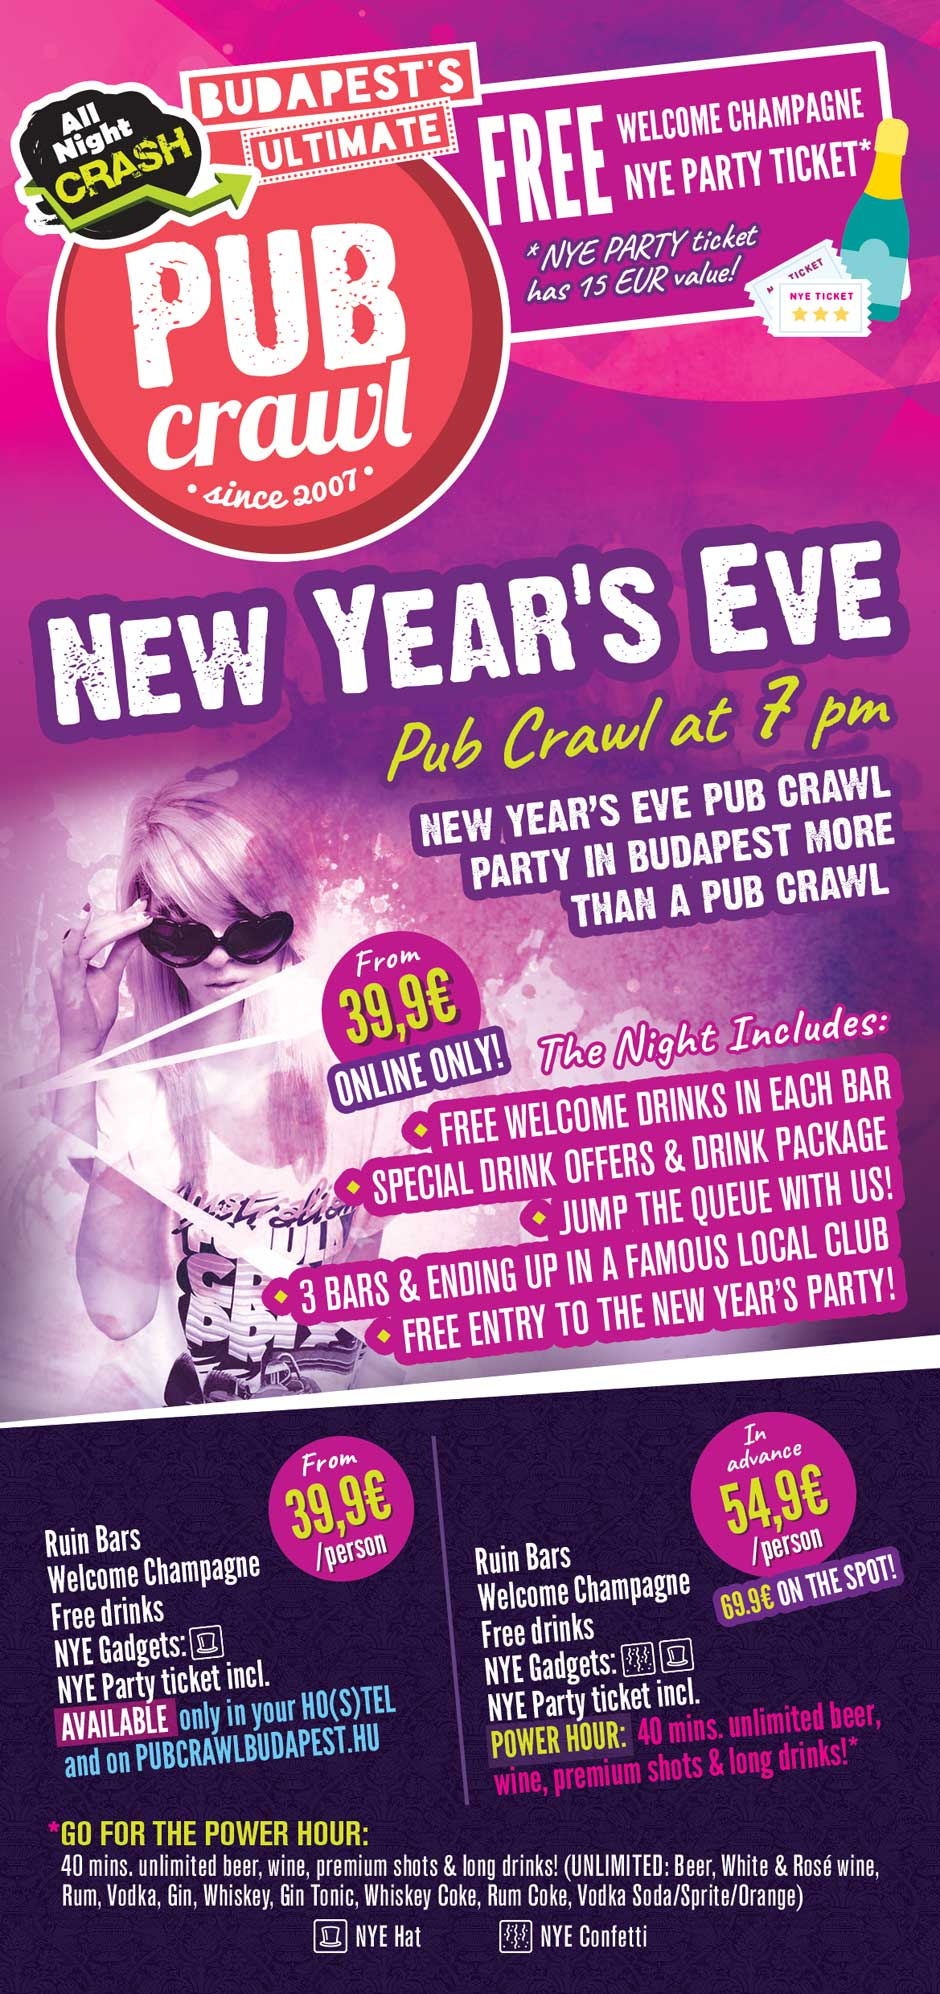 2020 New Year's Eve Pub Crawl in Budapest